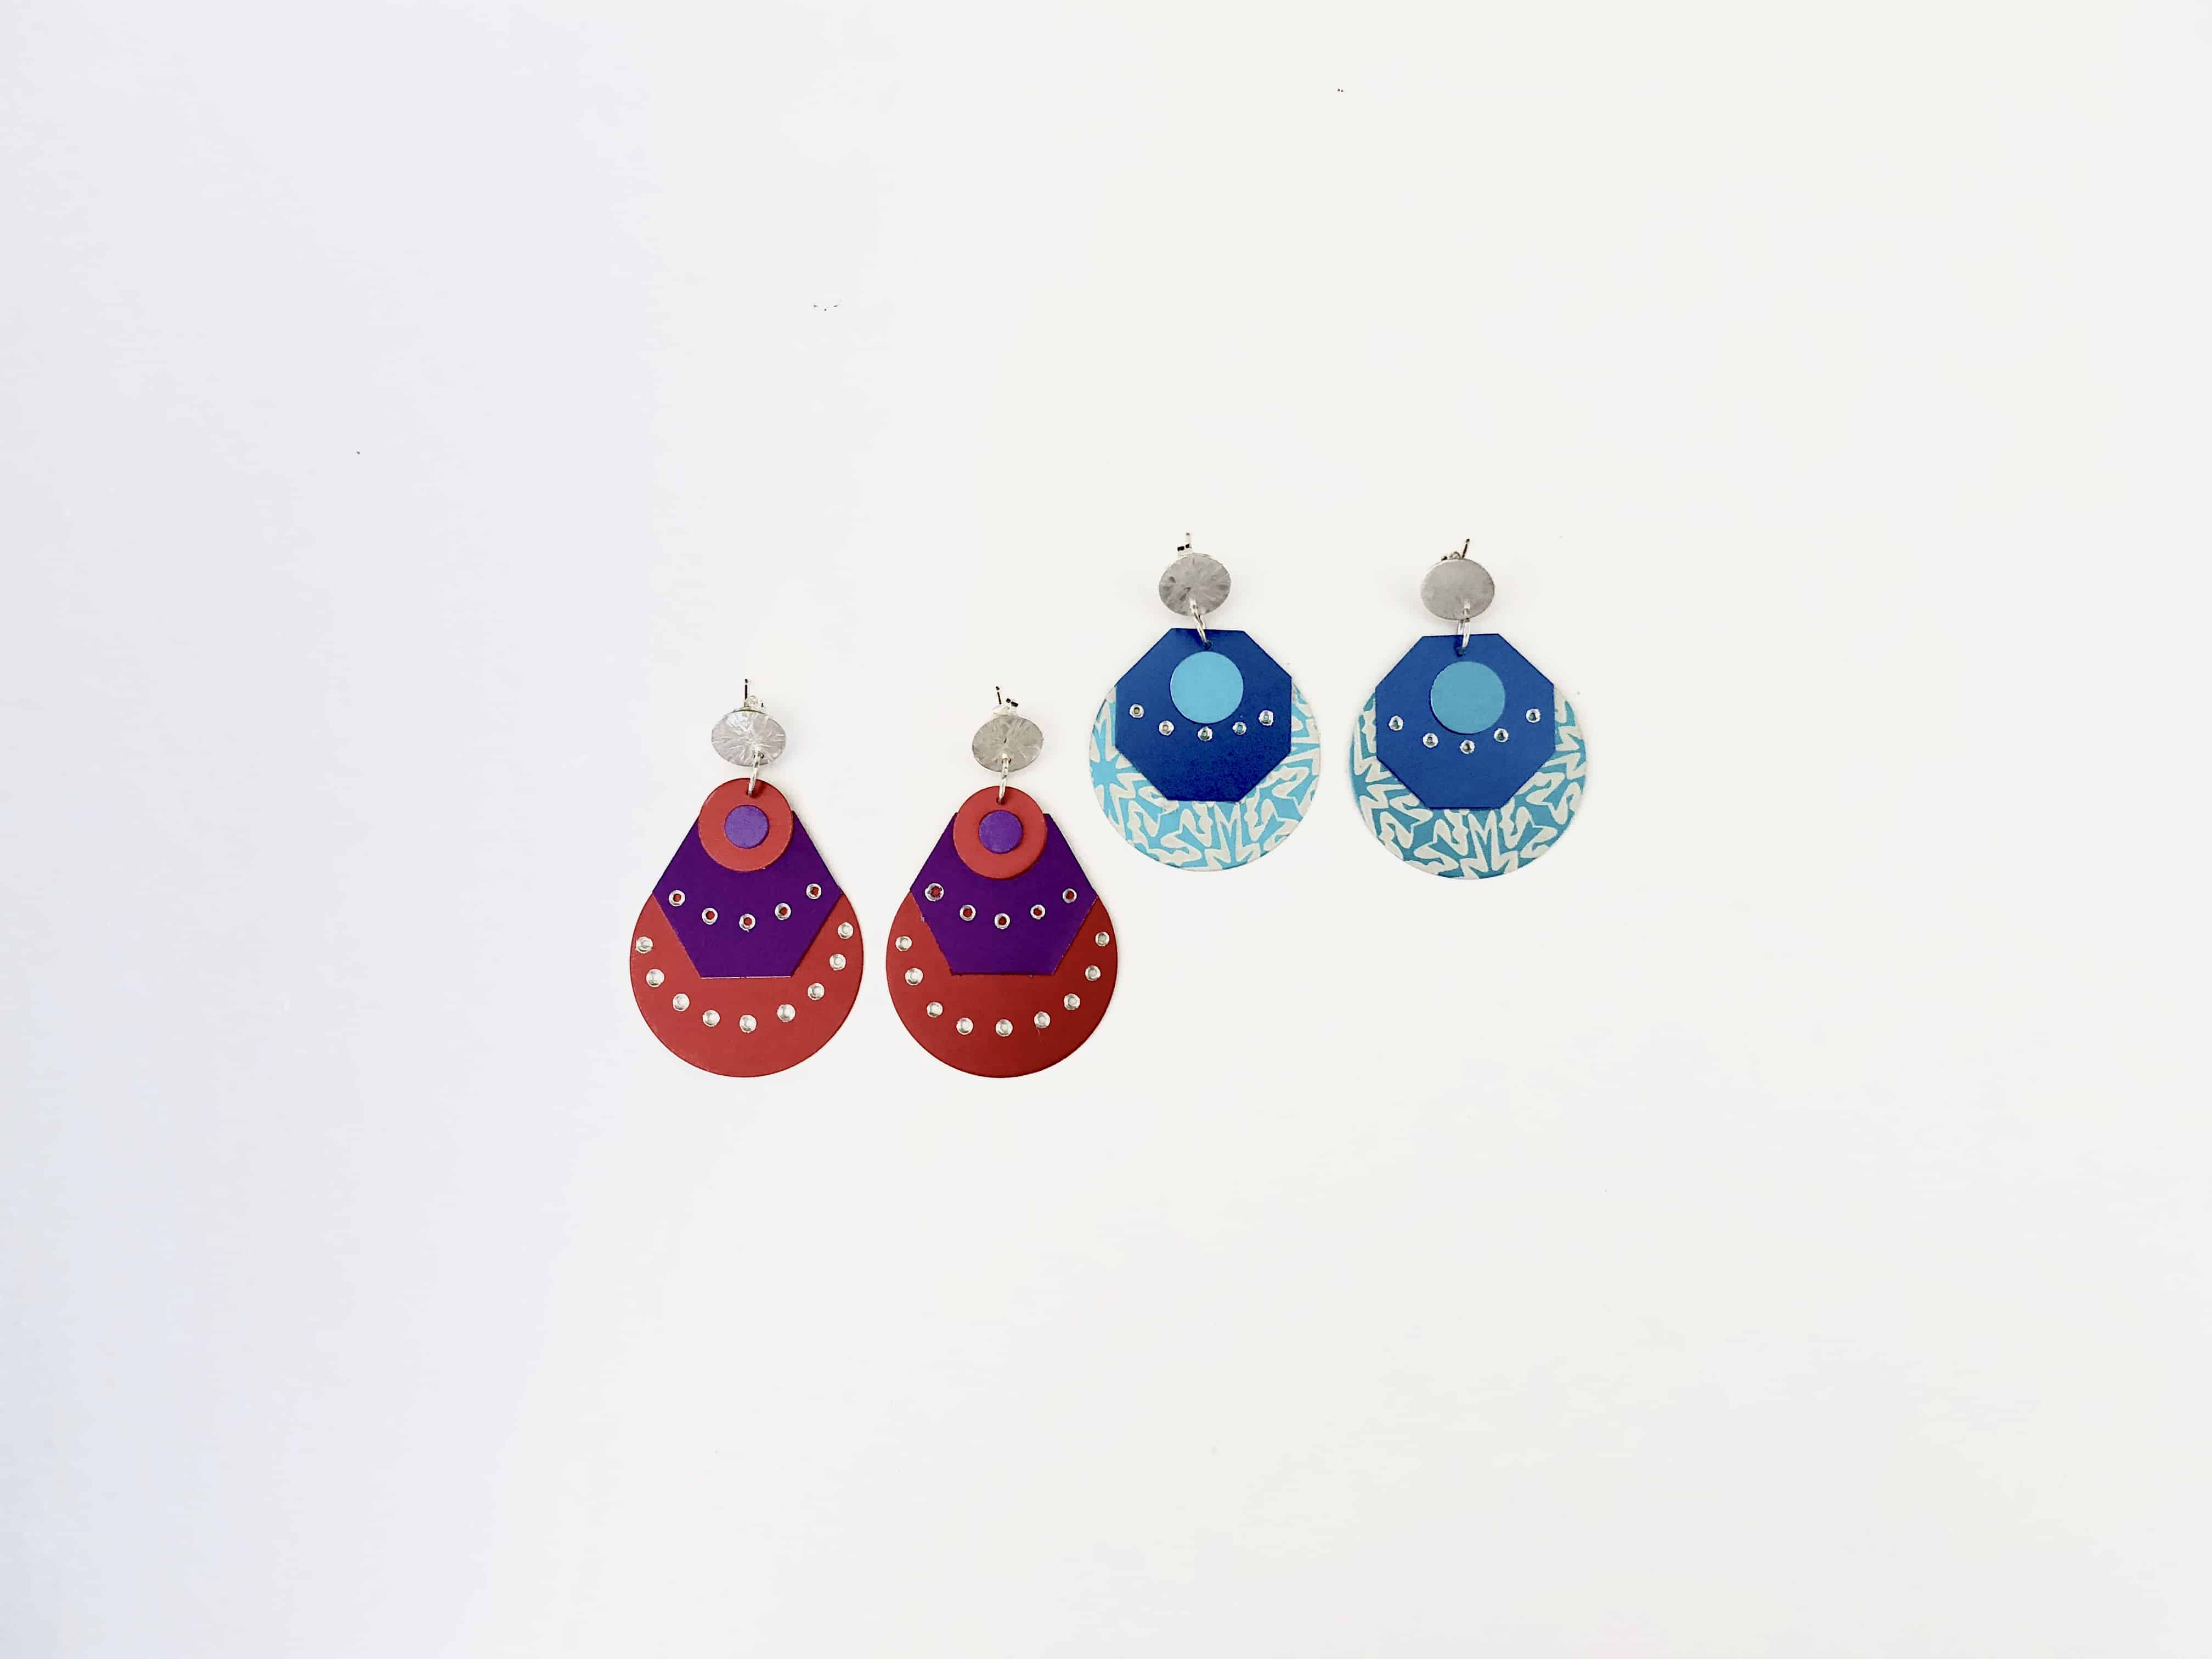 Meredith-Hoult-aluminium-earrings-plumage-red-and-blue-x2-1